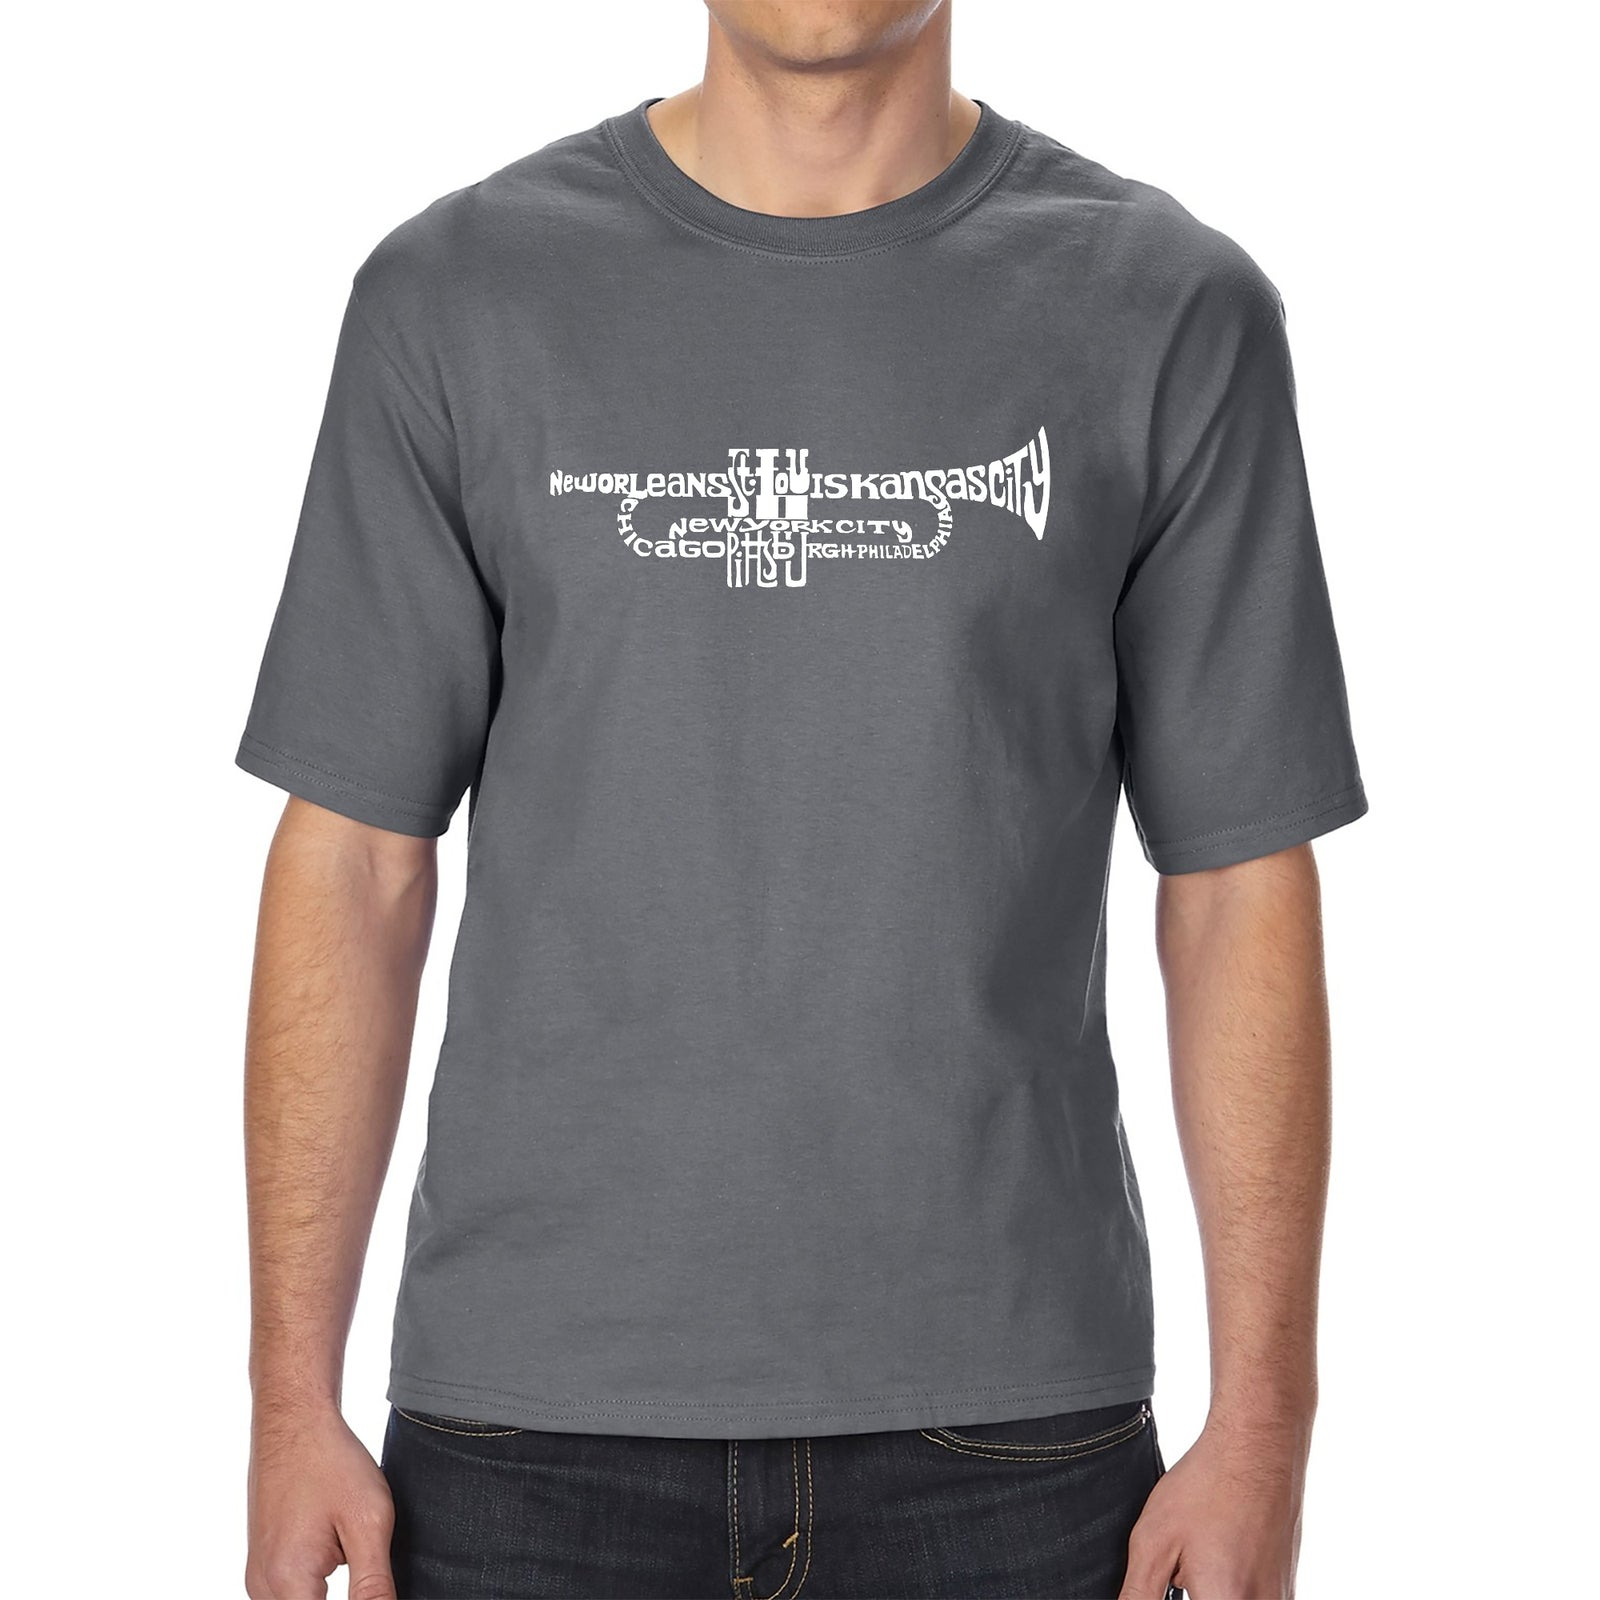 Men's Tall and Long Word Art T-shirt - Trumpet